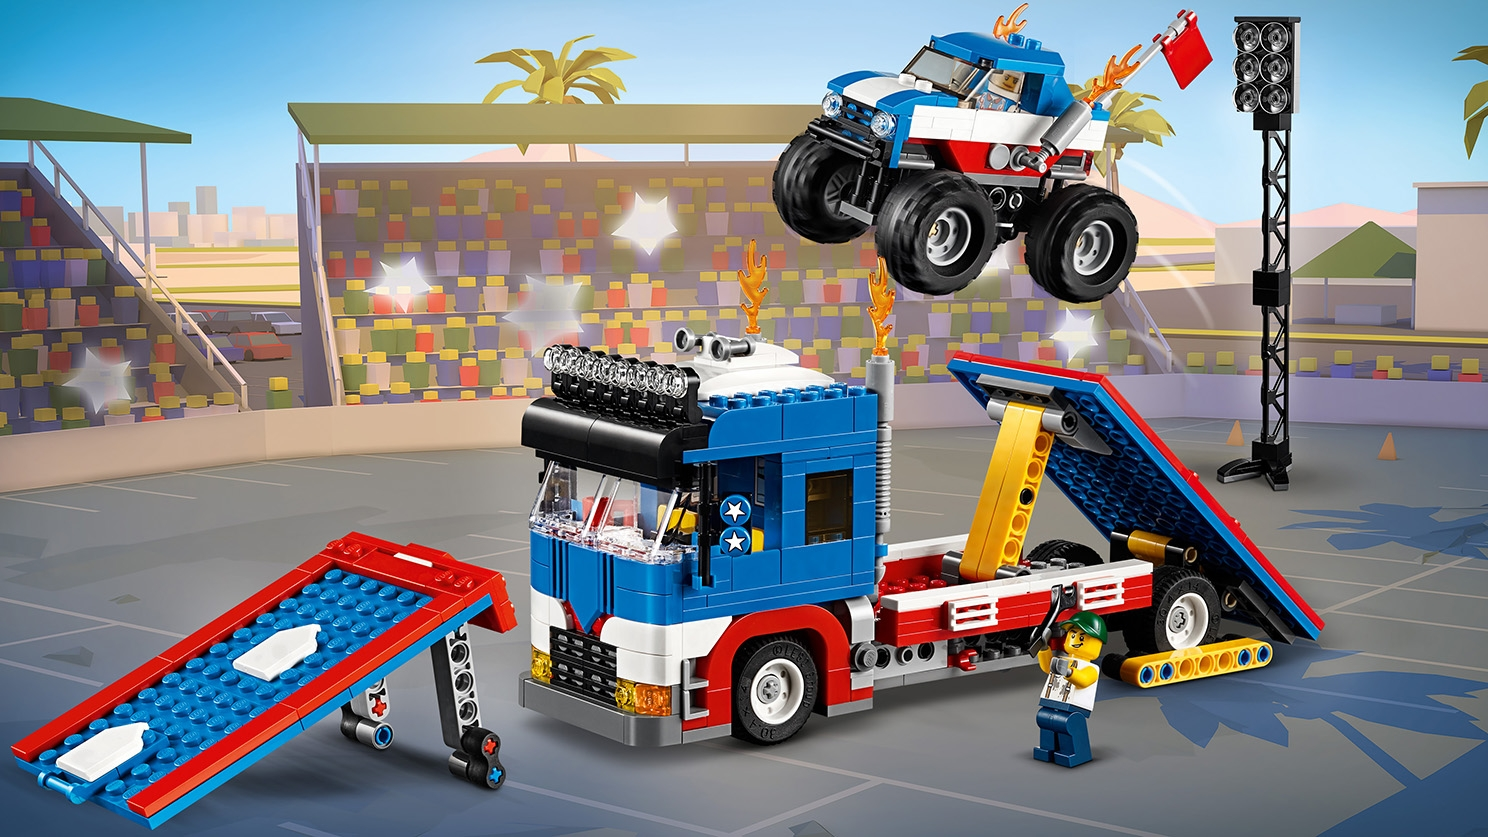 LEGO Creator 3 in 1 - 31085 Mobile Stunt Show - Convert the trailers of the truck into ramps and make a stunt show with a small blue monster truck.